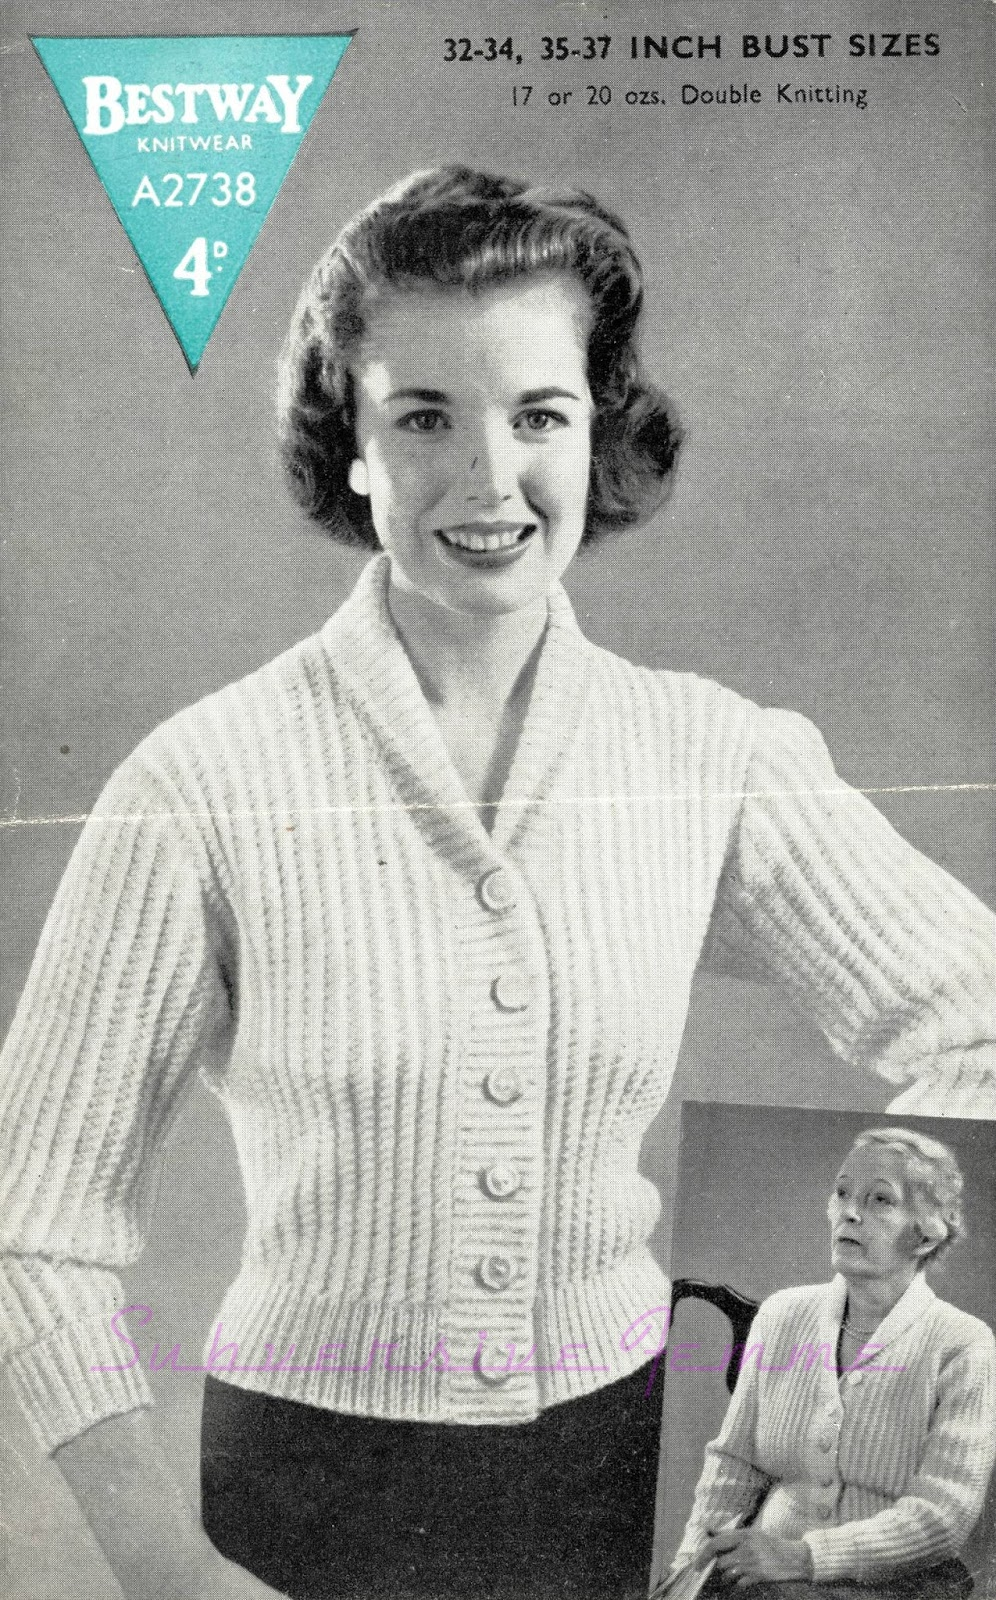 Free Vintage Knitting Patterns 1950s : The Vintage Pattern Files: 1950s Knitting - Fisherman-Knit Cardigan